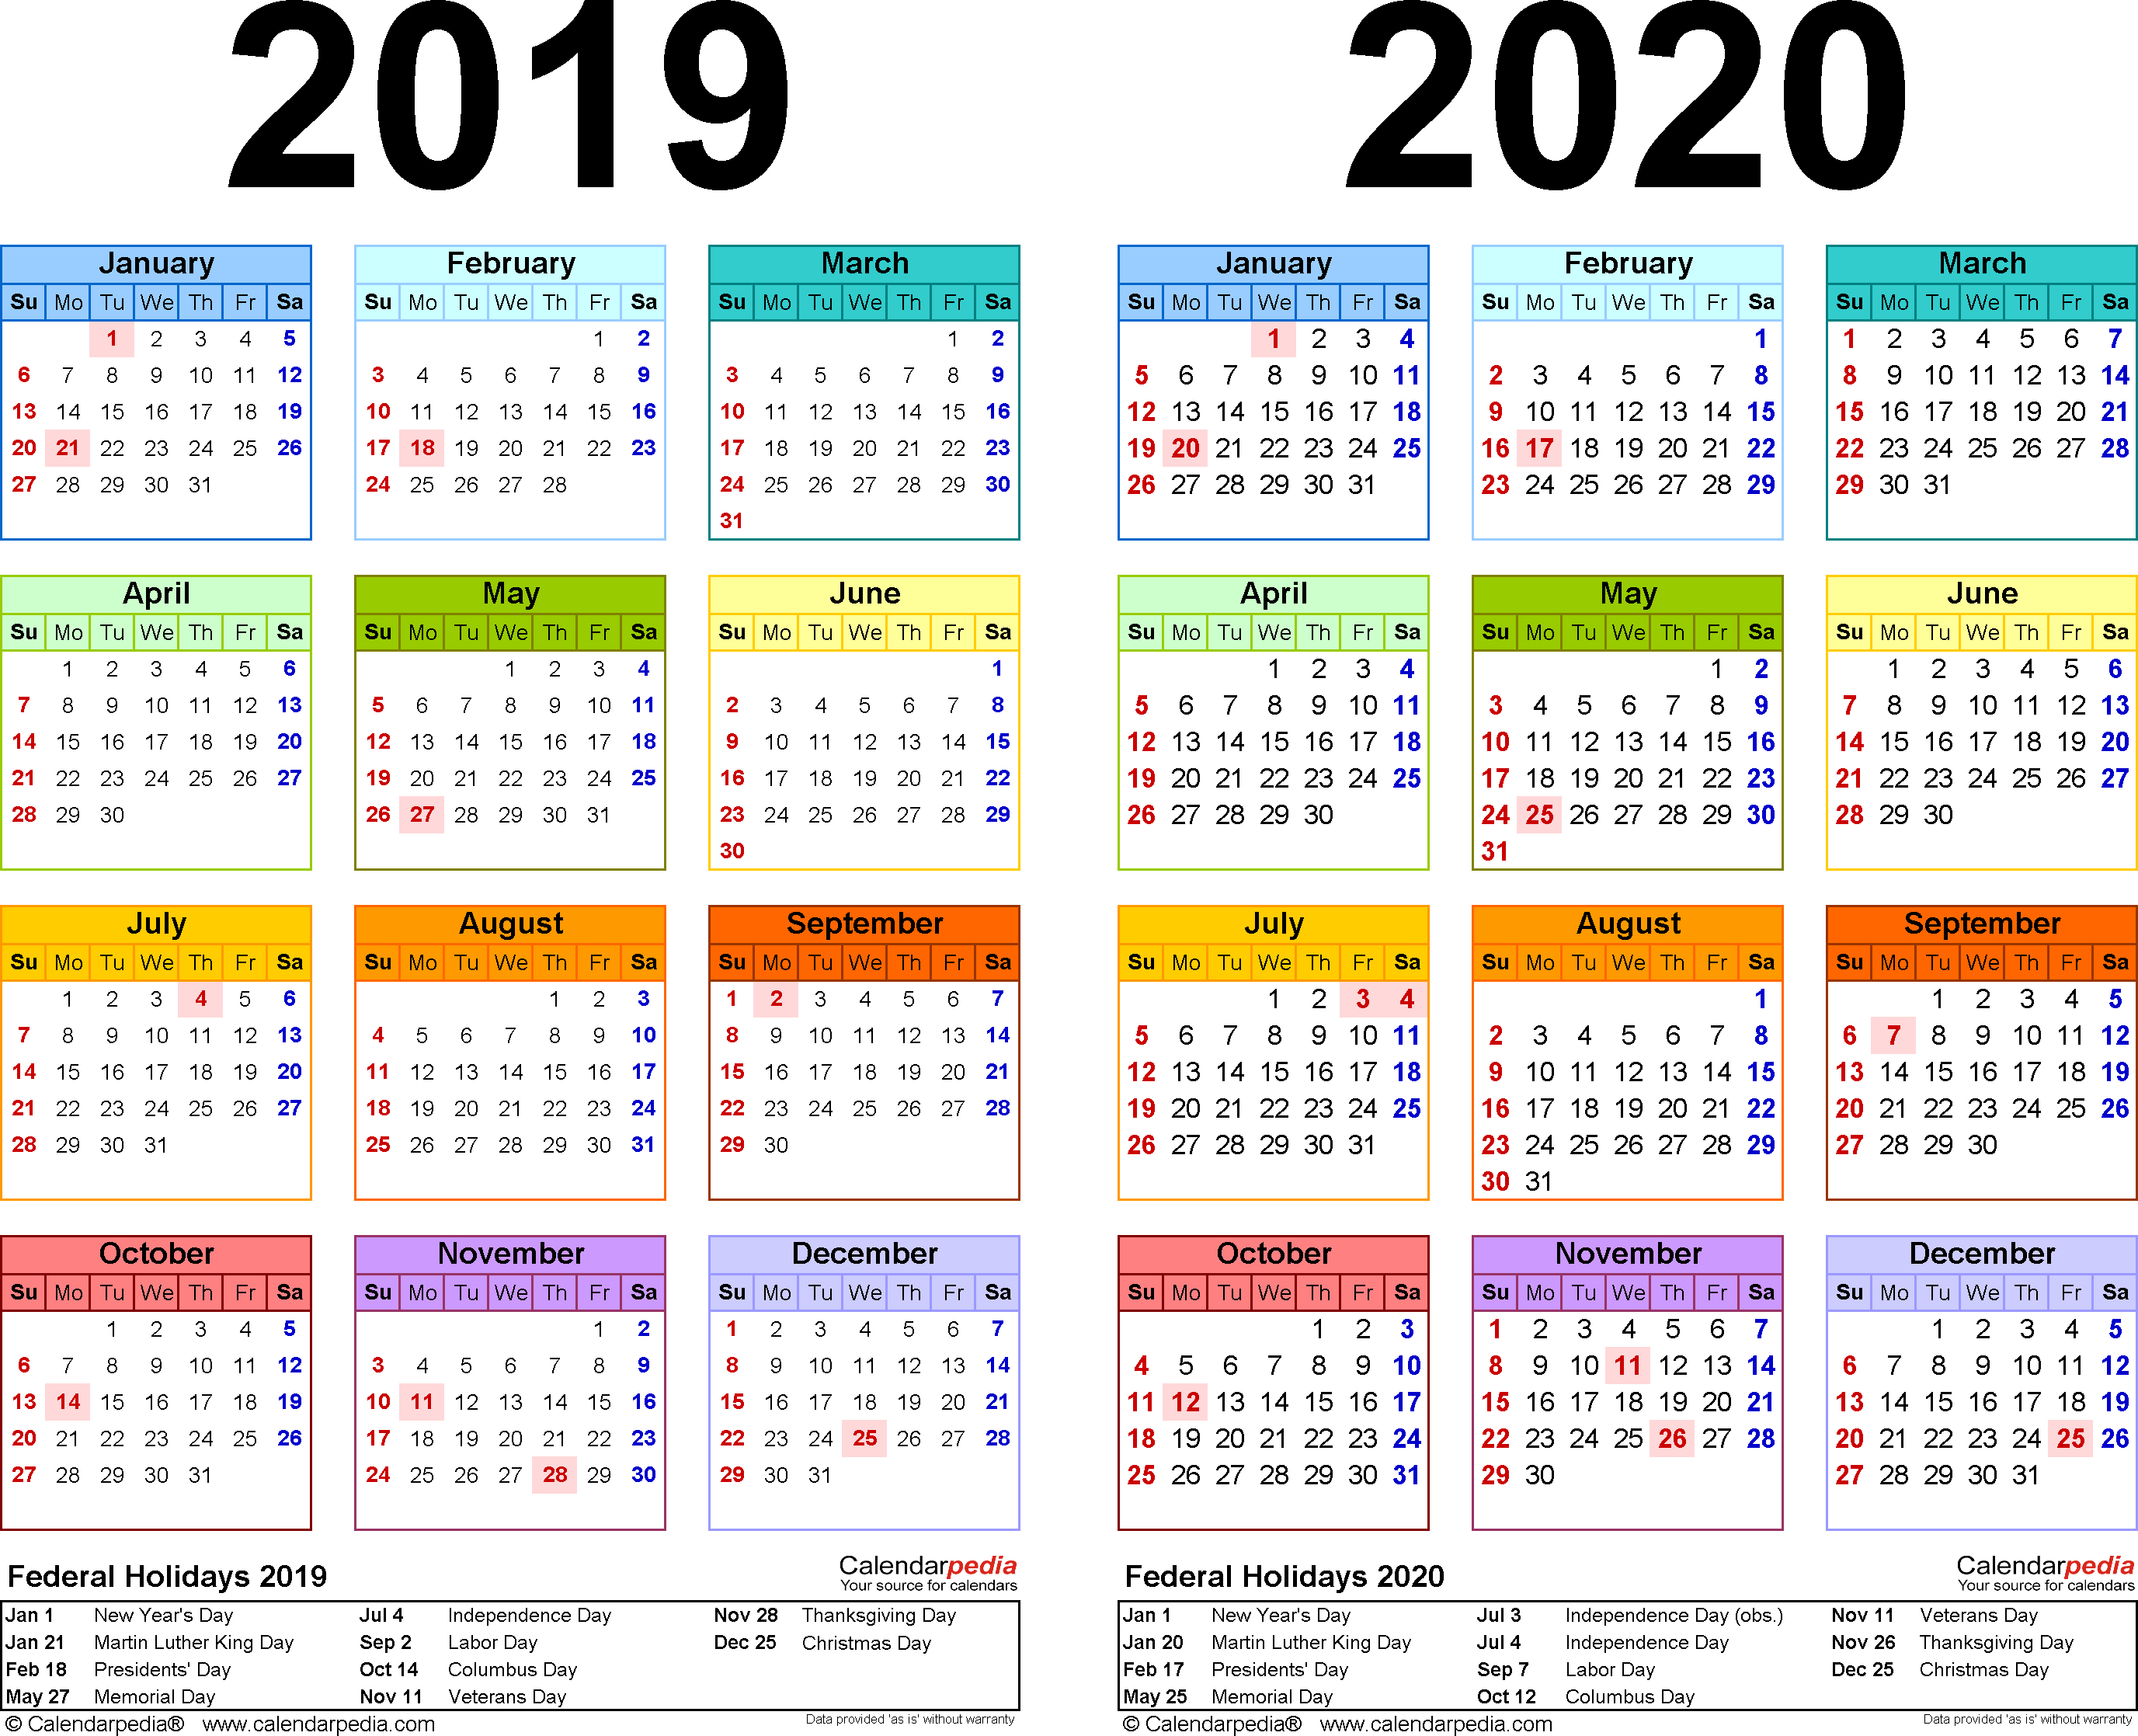 2019-2020 Calendar - Free Printable Two-Year Pdf Calendars throughout Printable Month To Month Clalanders Wityh Lines 2019/2020